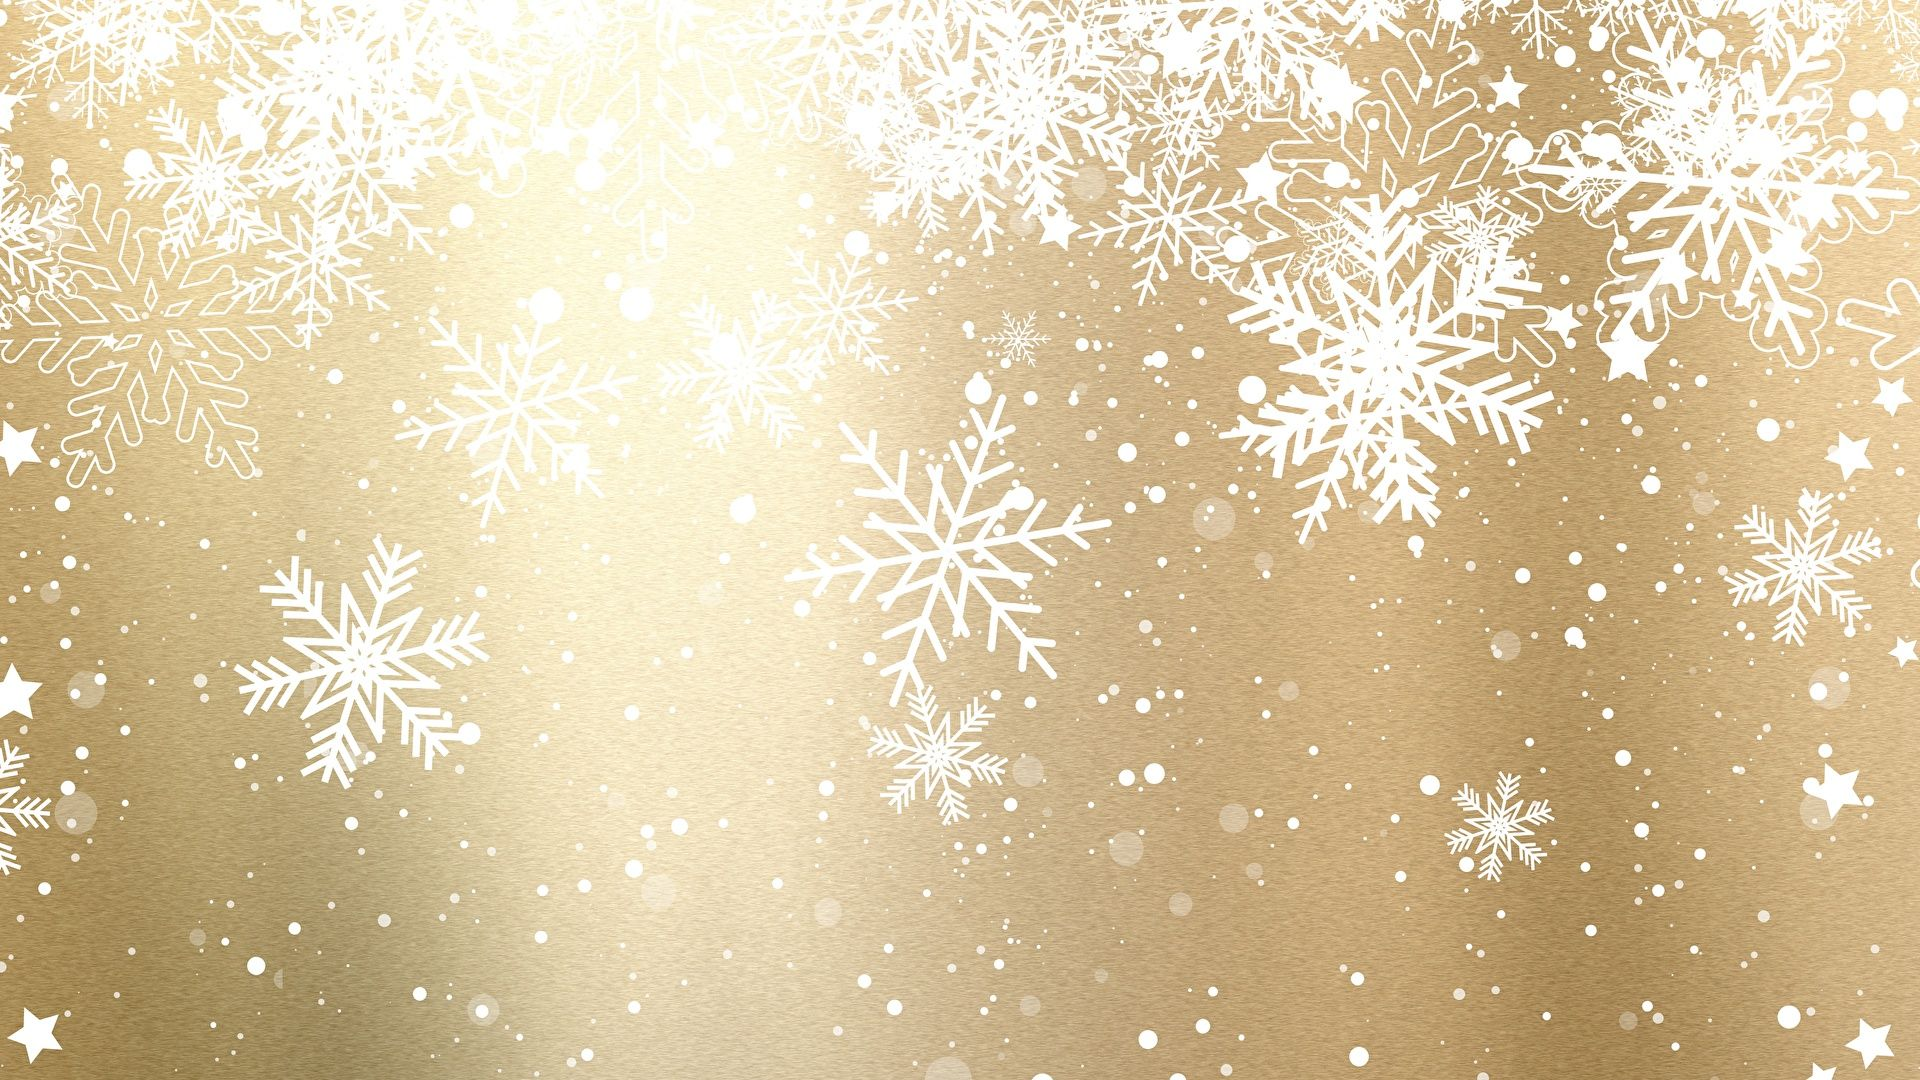 New Year With Snowflakes Background Wallpaper